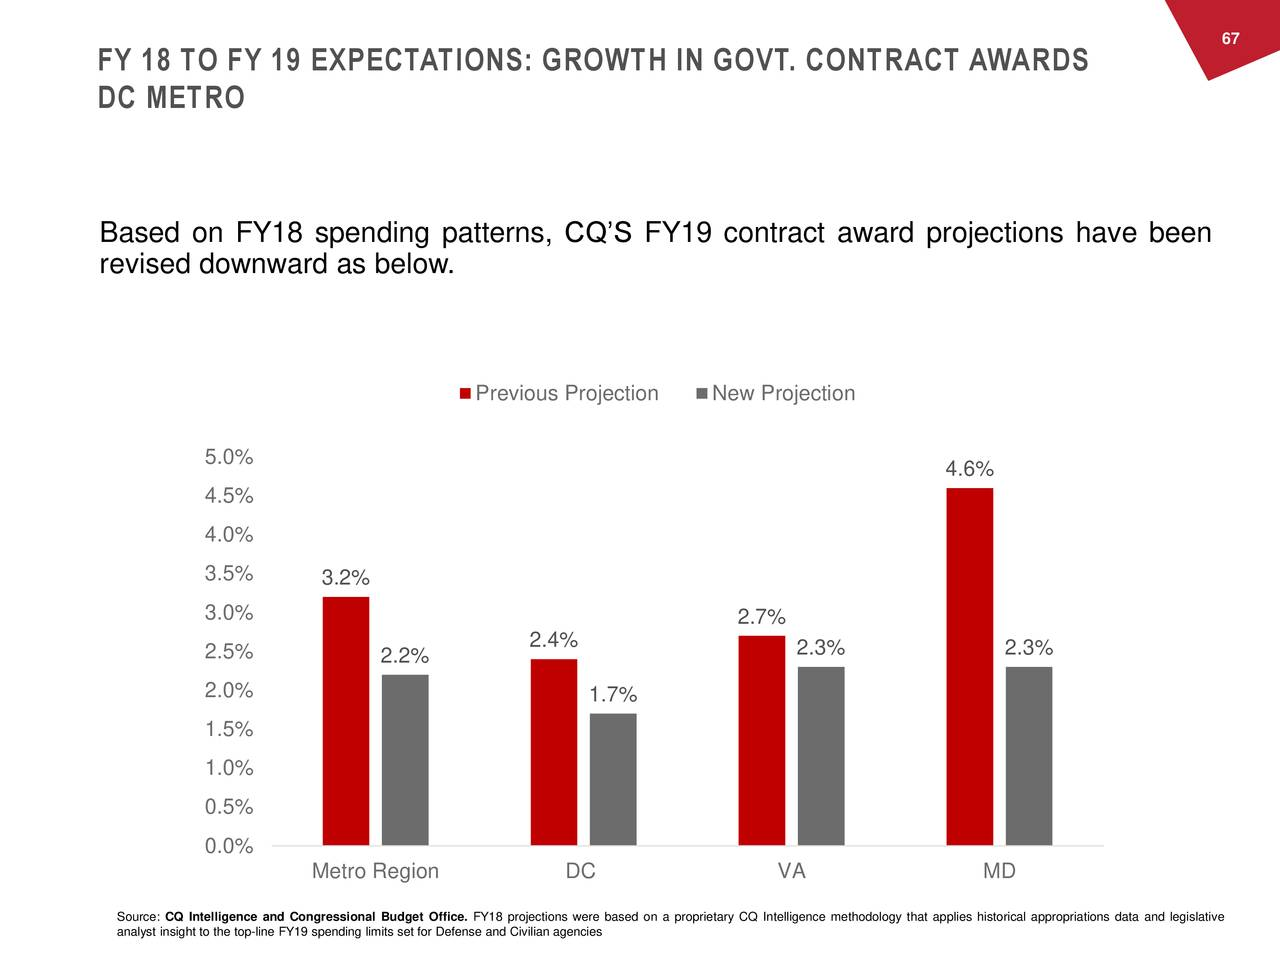 FY 18 TO FY 19 EXPECTATIONS: GROWTH IN GOVT. CONTRACT AWARDS DC METRO Based on FY18 spending patterns, CQ'S FY19 contract award projections have been revised downward as below. Previous Projection New Projection 5.0% 4.6% 4.5% 4.0% 3.5% 3.2% 3.0% 2.7% 2.5% 2.2% 2.4% 2.3% 2.3% 2.0% 1.7% 1.5% 1.0% 0.5% 0.0% Metro Region DC VA MD Source: CQ Intelligence and Congressional Budget Office. FY18 projections were based on a proprietary CQ Intelligence methodology that applies historical appropriations data and legislative analyst insight to the top-line FY19 spending limits set for Defense and Civilian agencies